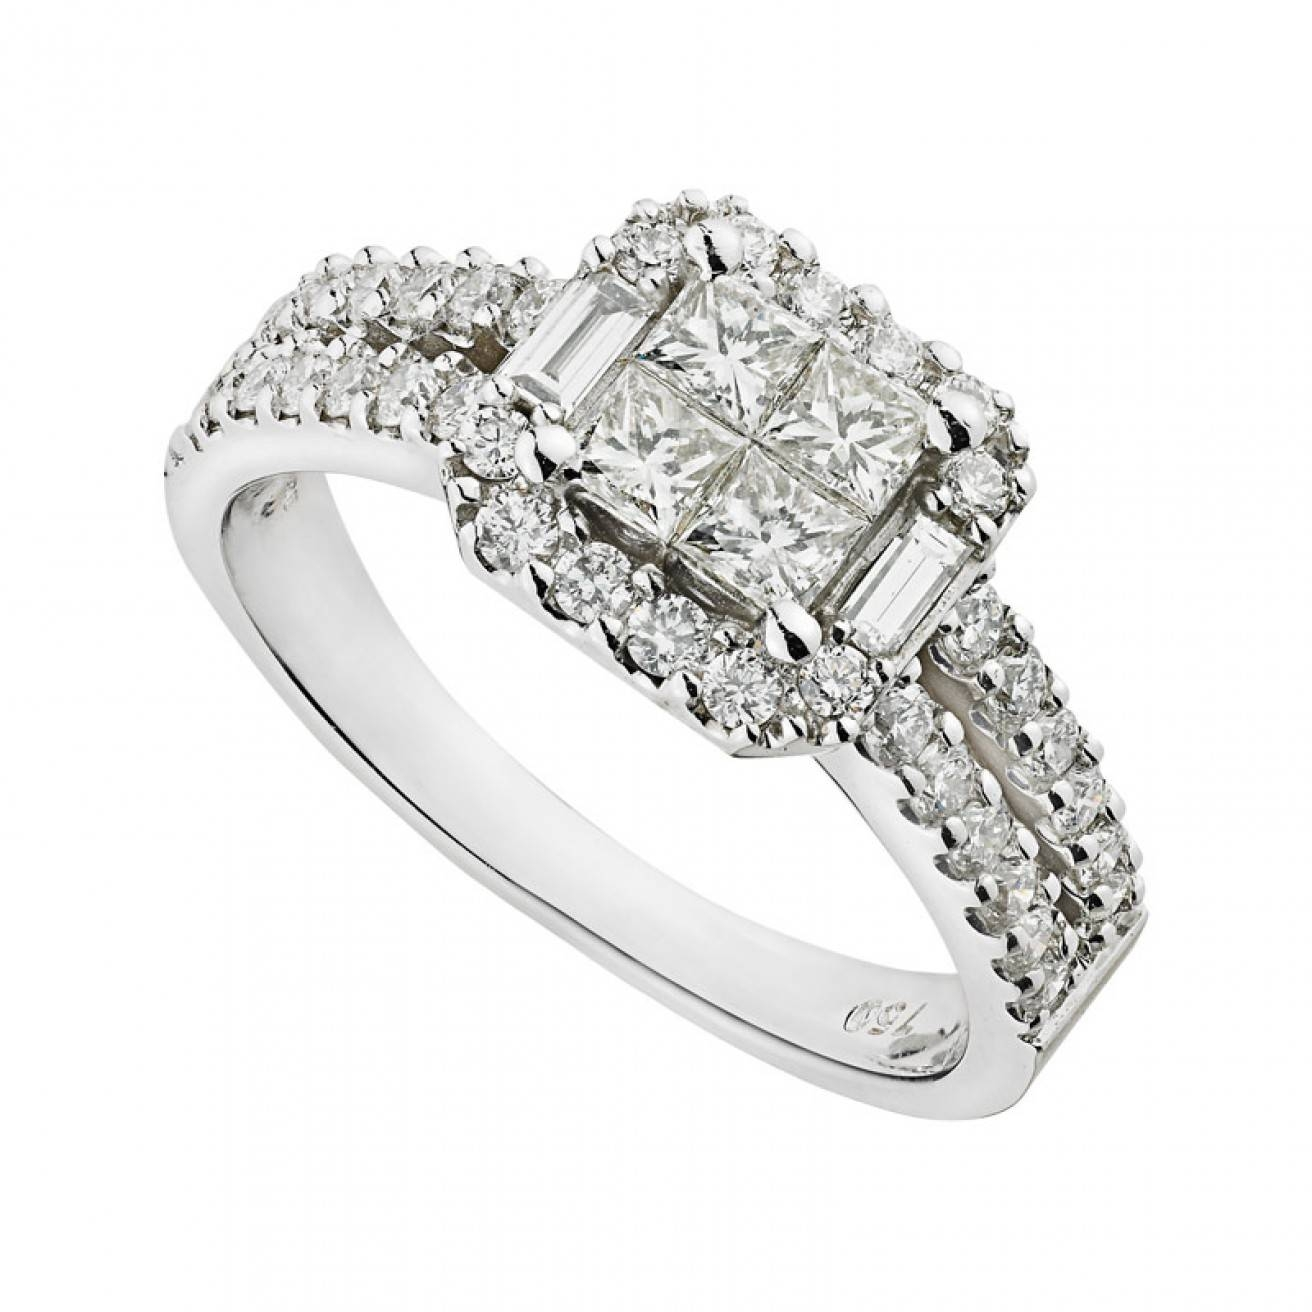 Buy A White Gold Engagement Ring – Fraser Hart With Regard To White Gold Engagement And Wedding Rings (View 6 of 15)